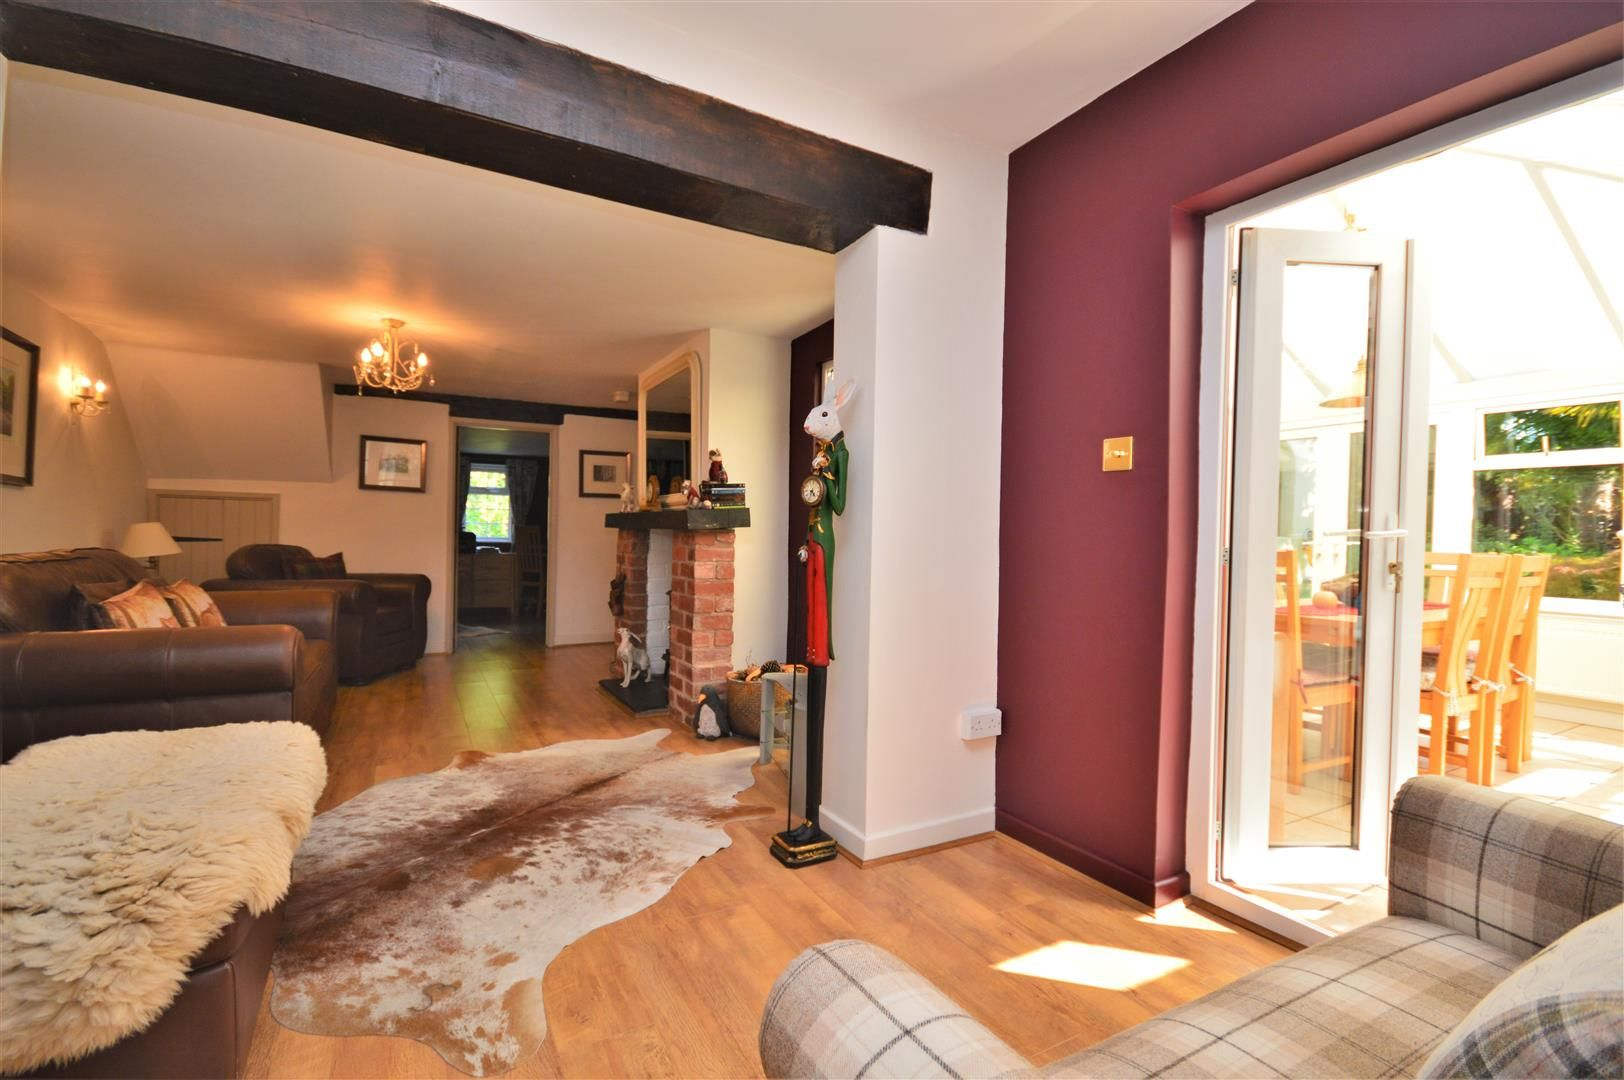 3 bed semi-detached for sale in Stretton Sugwas 4